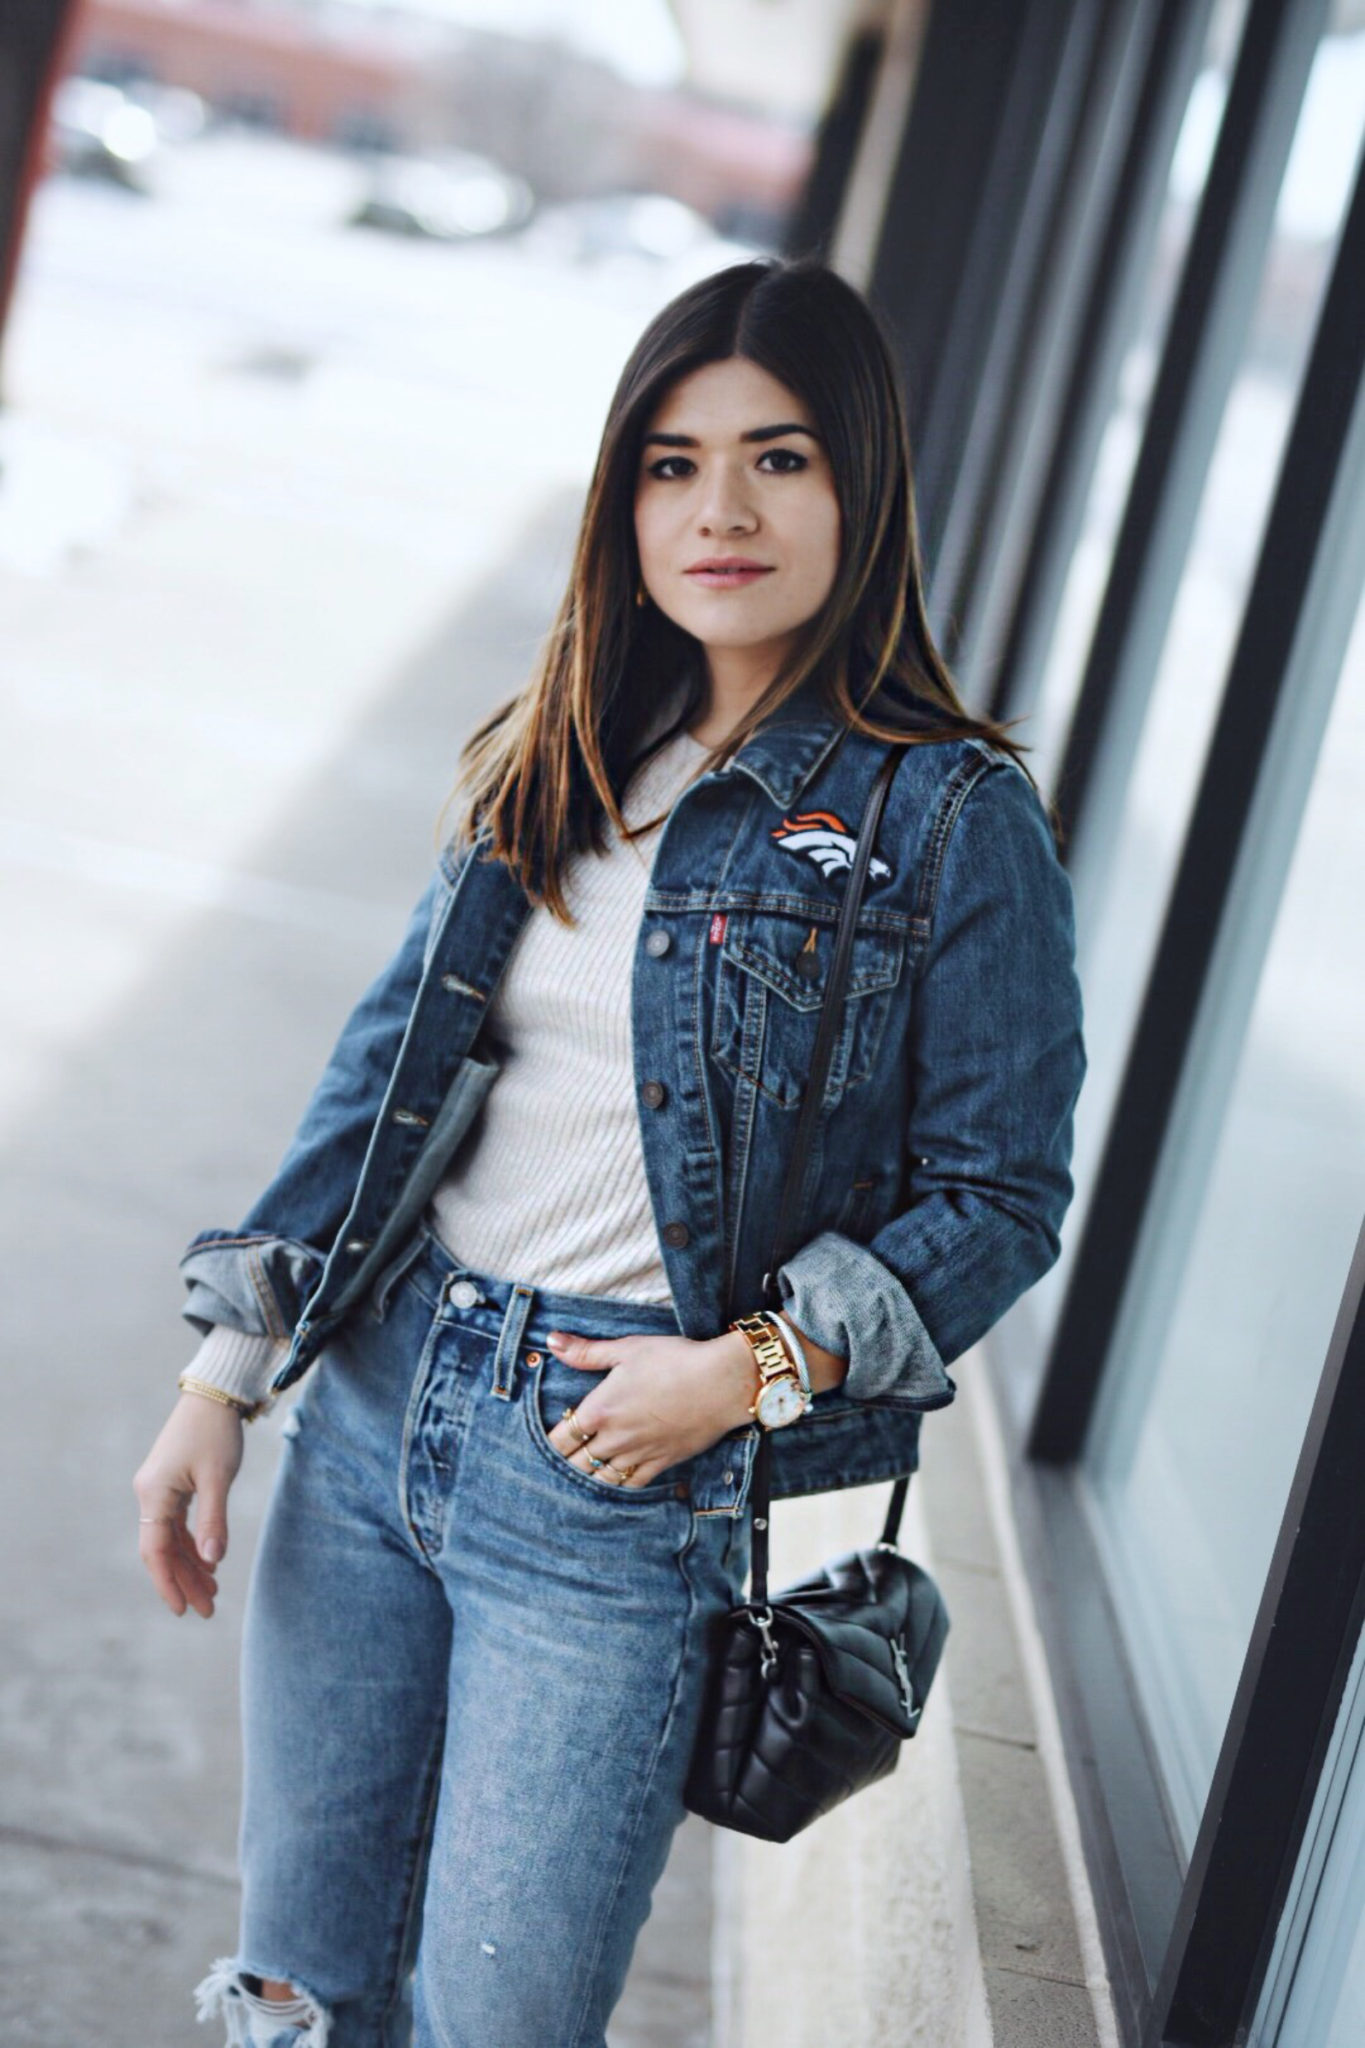 Carolina Hellal of Chic Talk wearing a Levi's Denver Broncos Jacket, Levi's 501 jeans, YSL crossbody bag and Public Desire boots